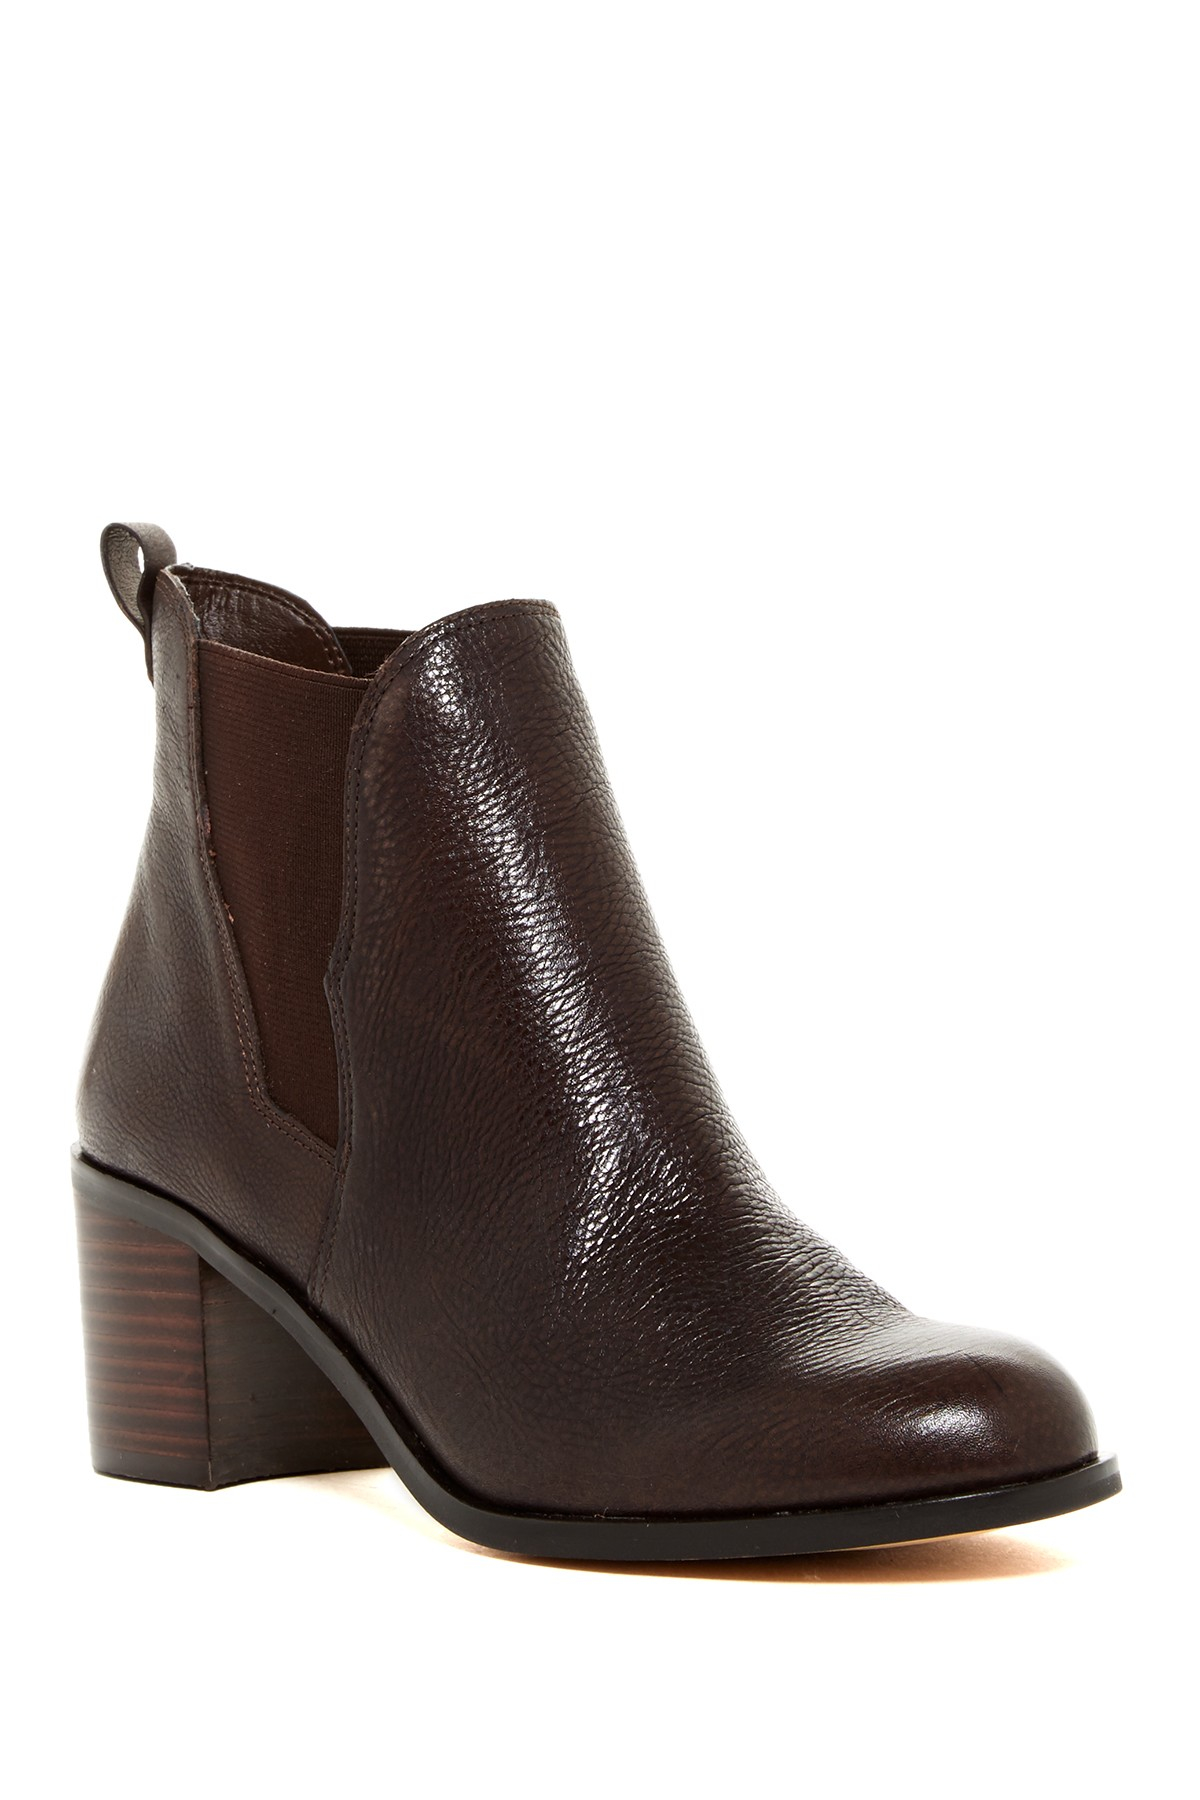 Lyst Sam Edelman Justin Leather Ankle Boots In Brown